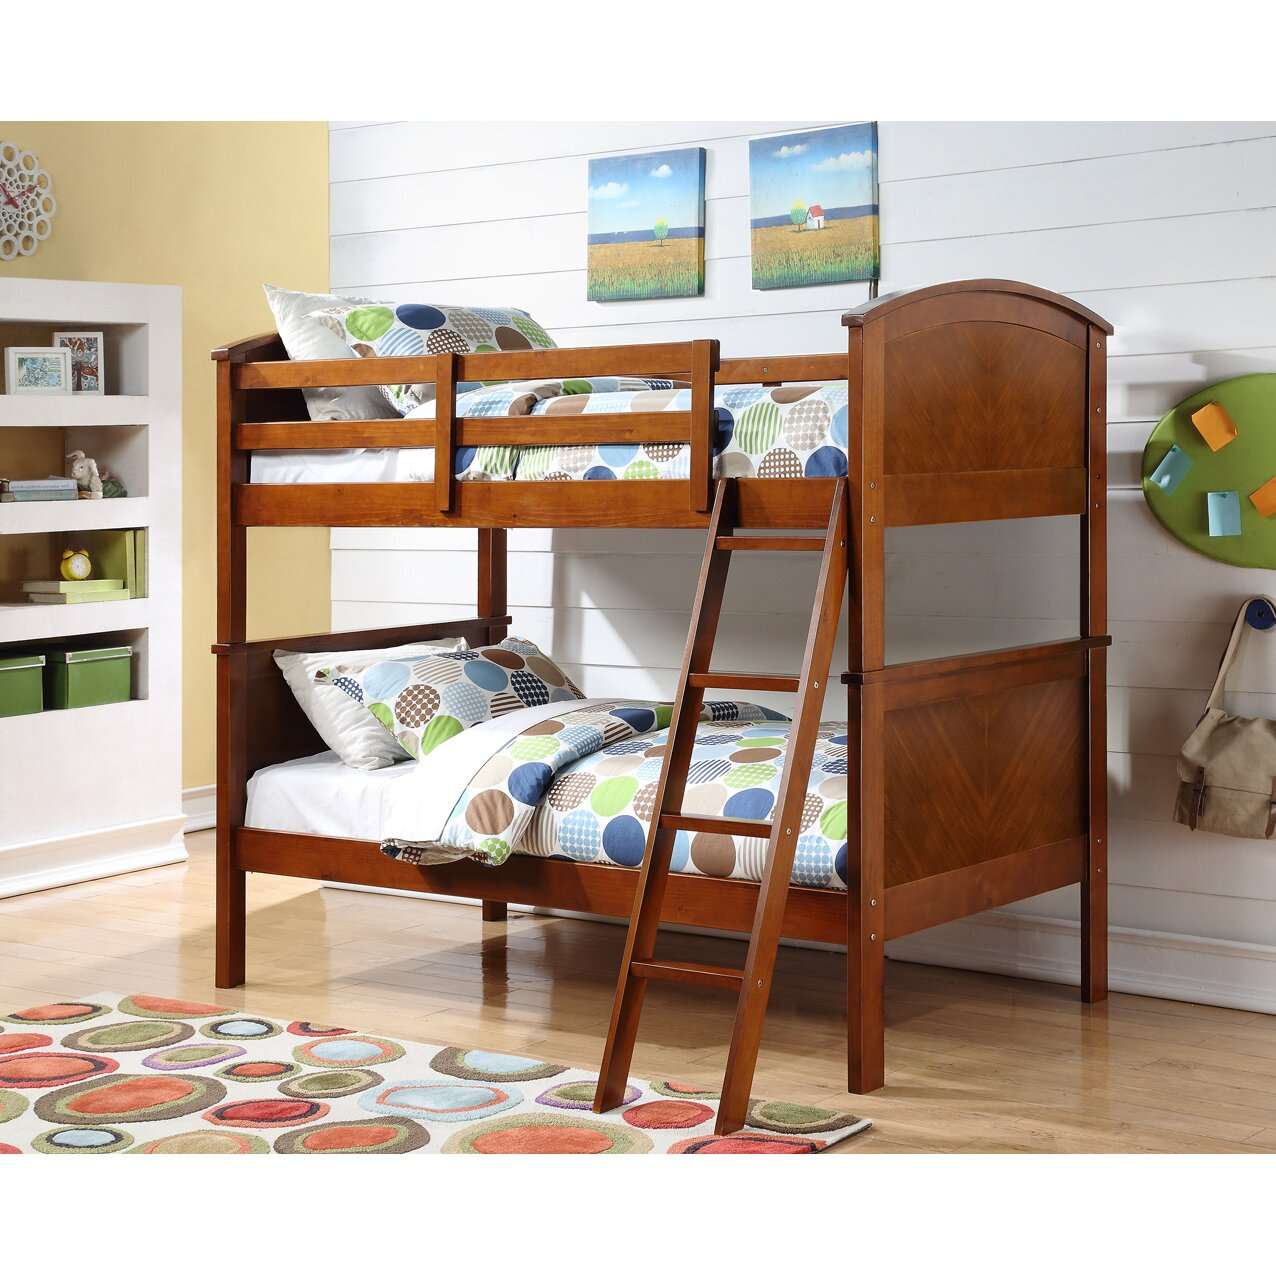 Donco Kids Twin Bunk Bed